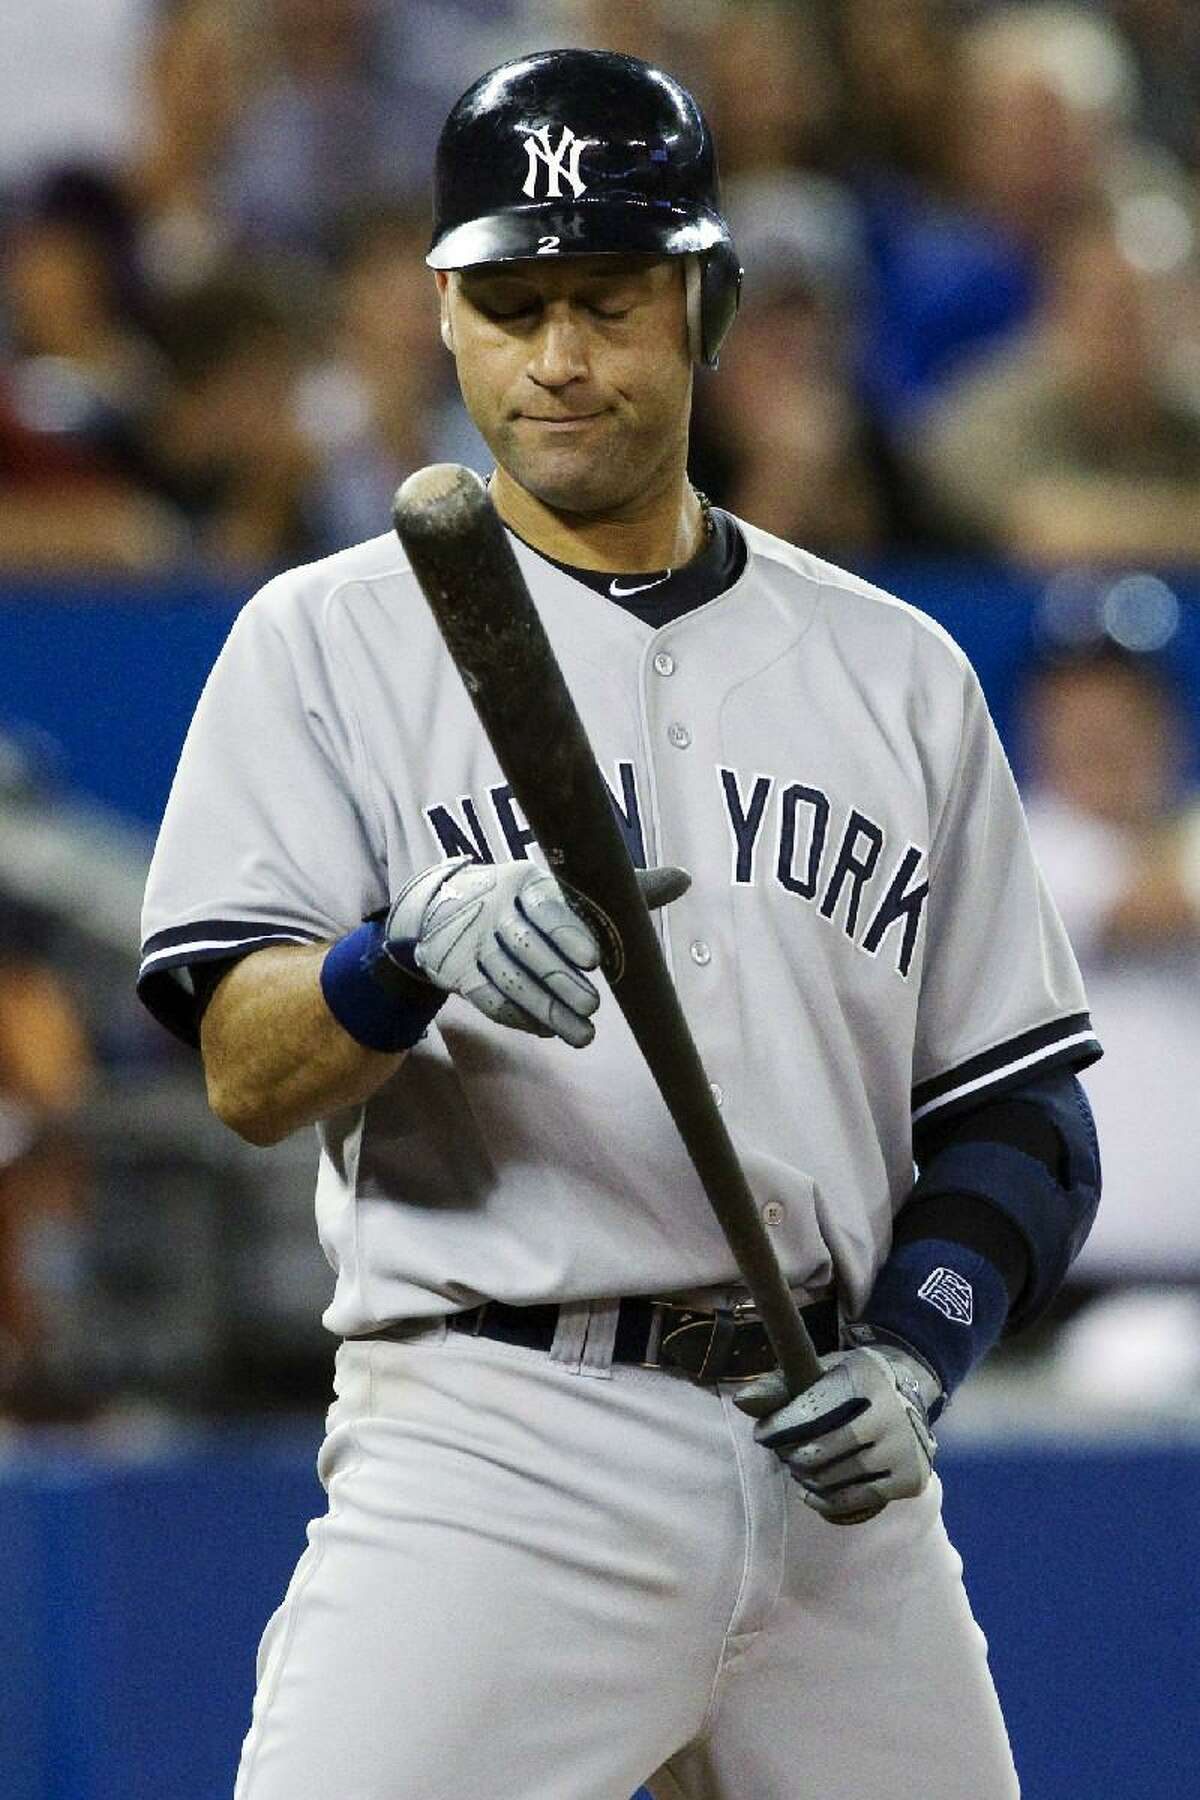 AP PHOTO/The Canadian Press, Chris Young New York Yankees' Derek Jeter reacts after a strike against the Toronto Blue Jays during the ninth inning of Sunday's game in Toronto. The Blue Jays won 10-7.